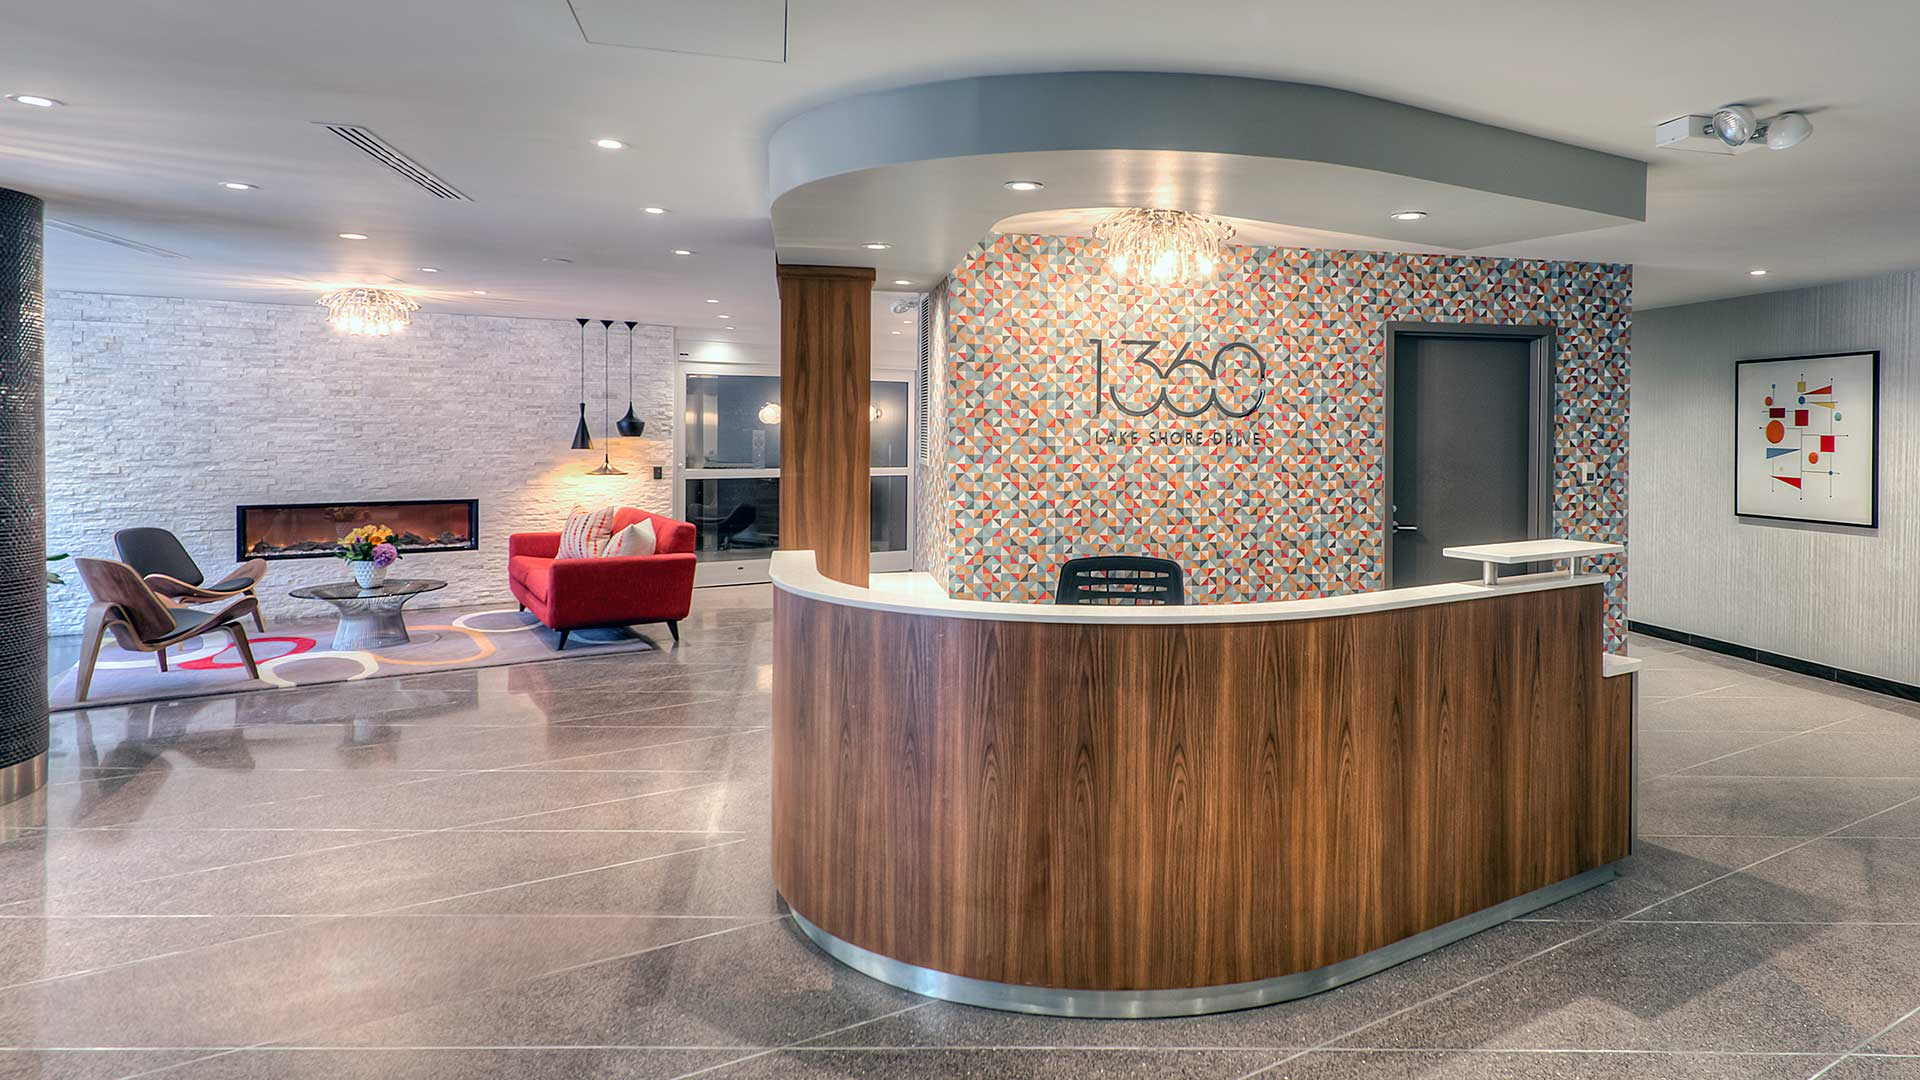 The front desk in the 1360 Lake Shore Drive lobby. A lounge area with fire place is seen further back to the left.